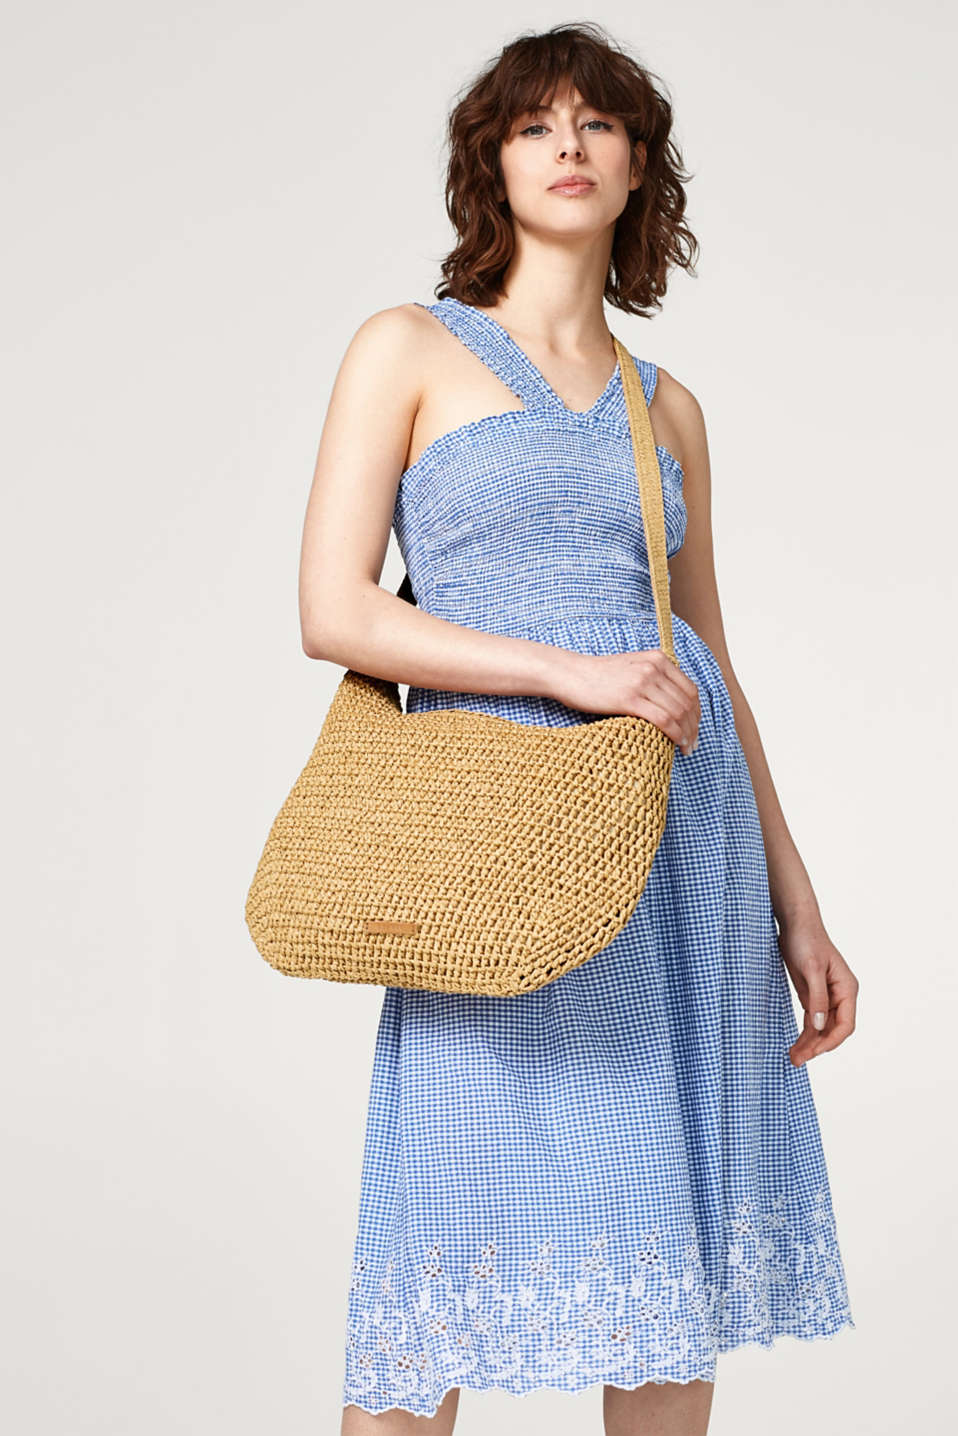 Summery bast shoulder bag